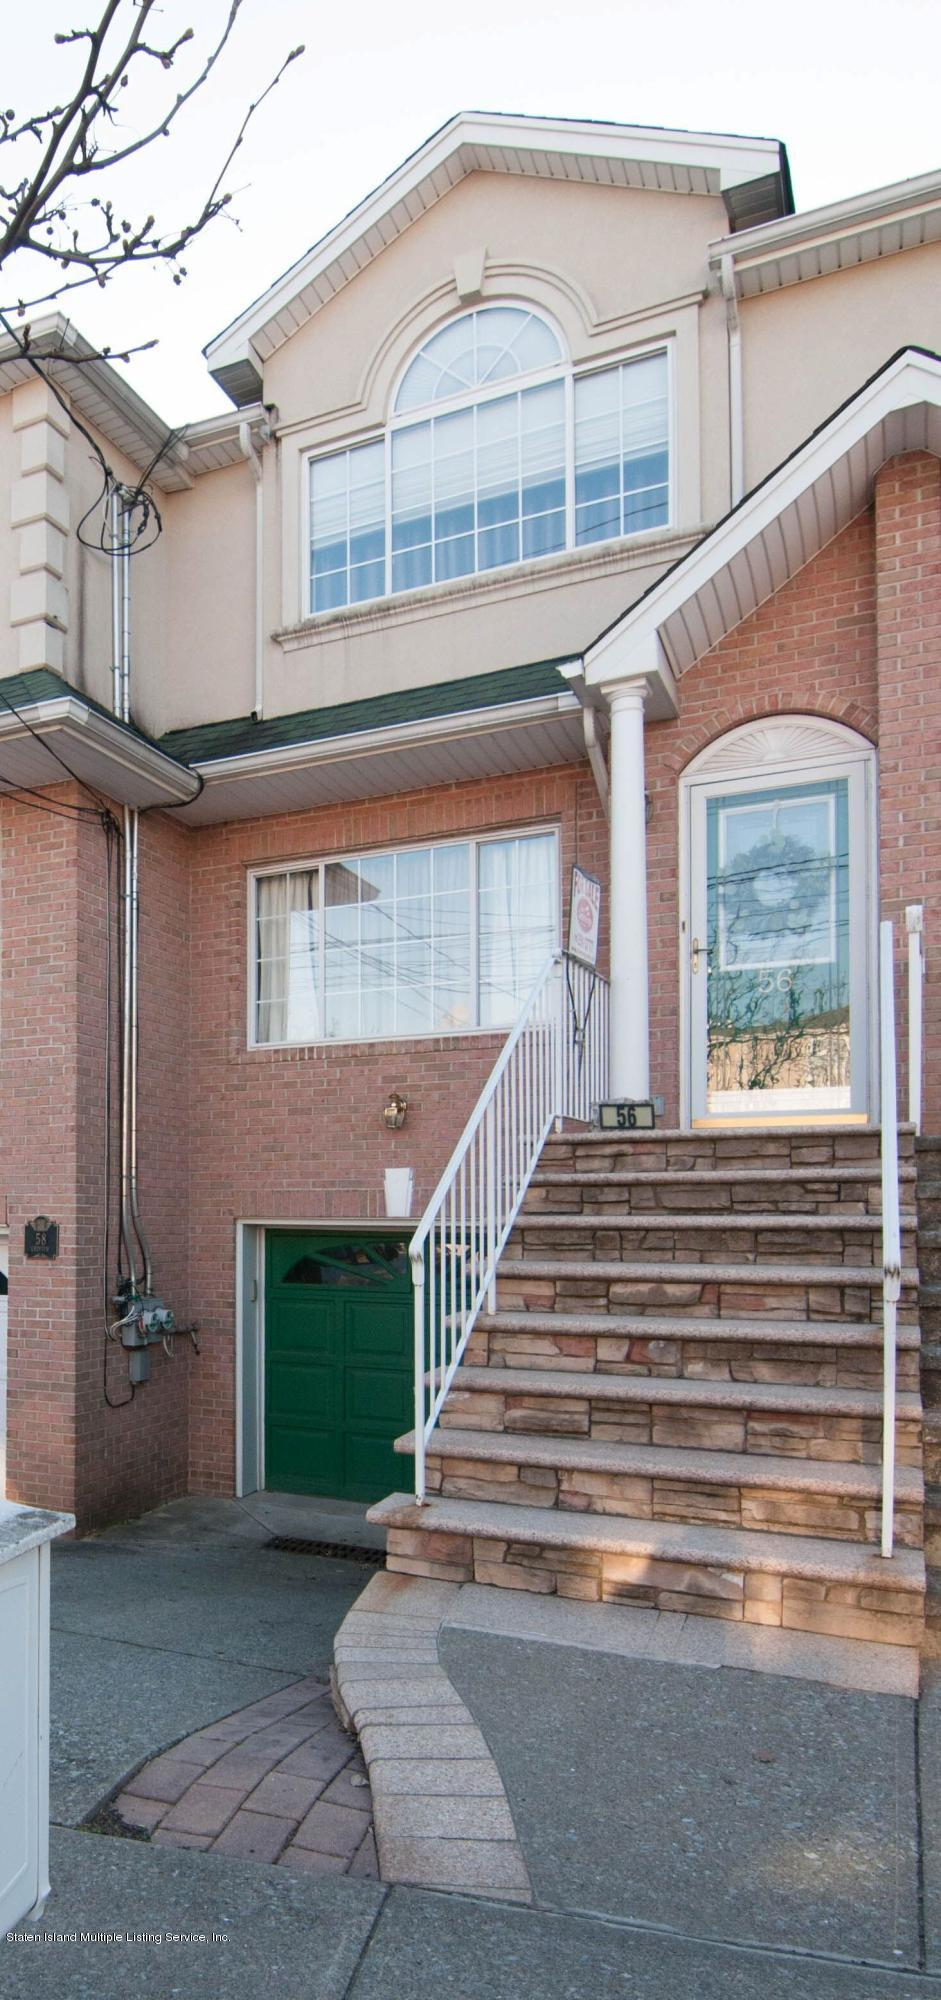 Single Family - Attached 56 Endview Street  Staten Island, NY 10312, MLS-1131439-4